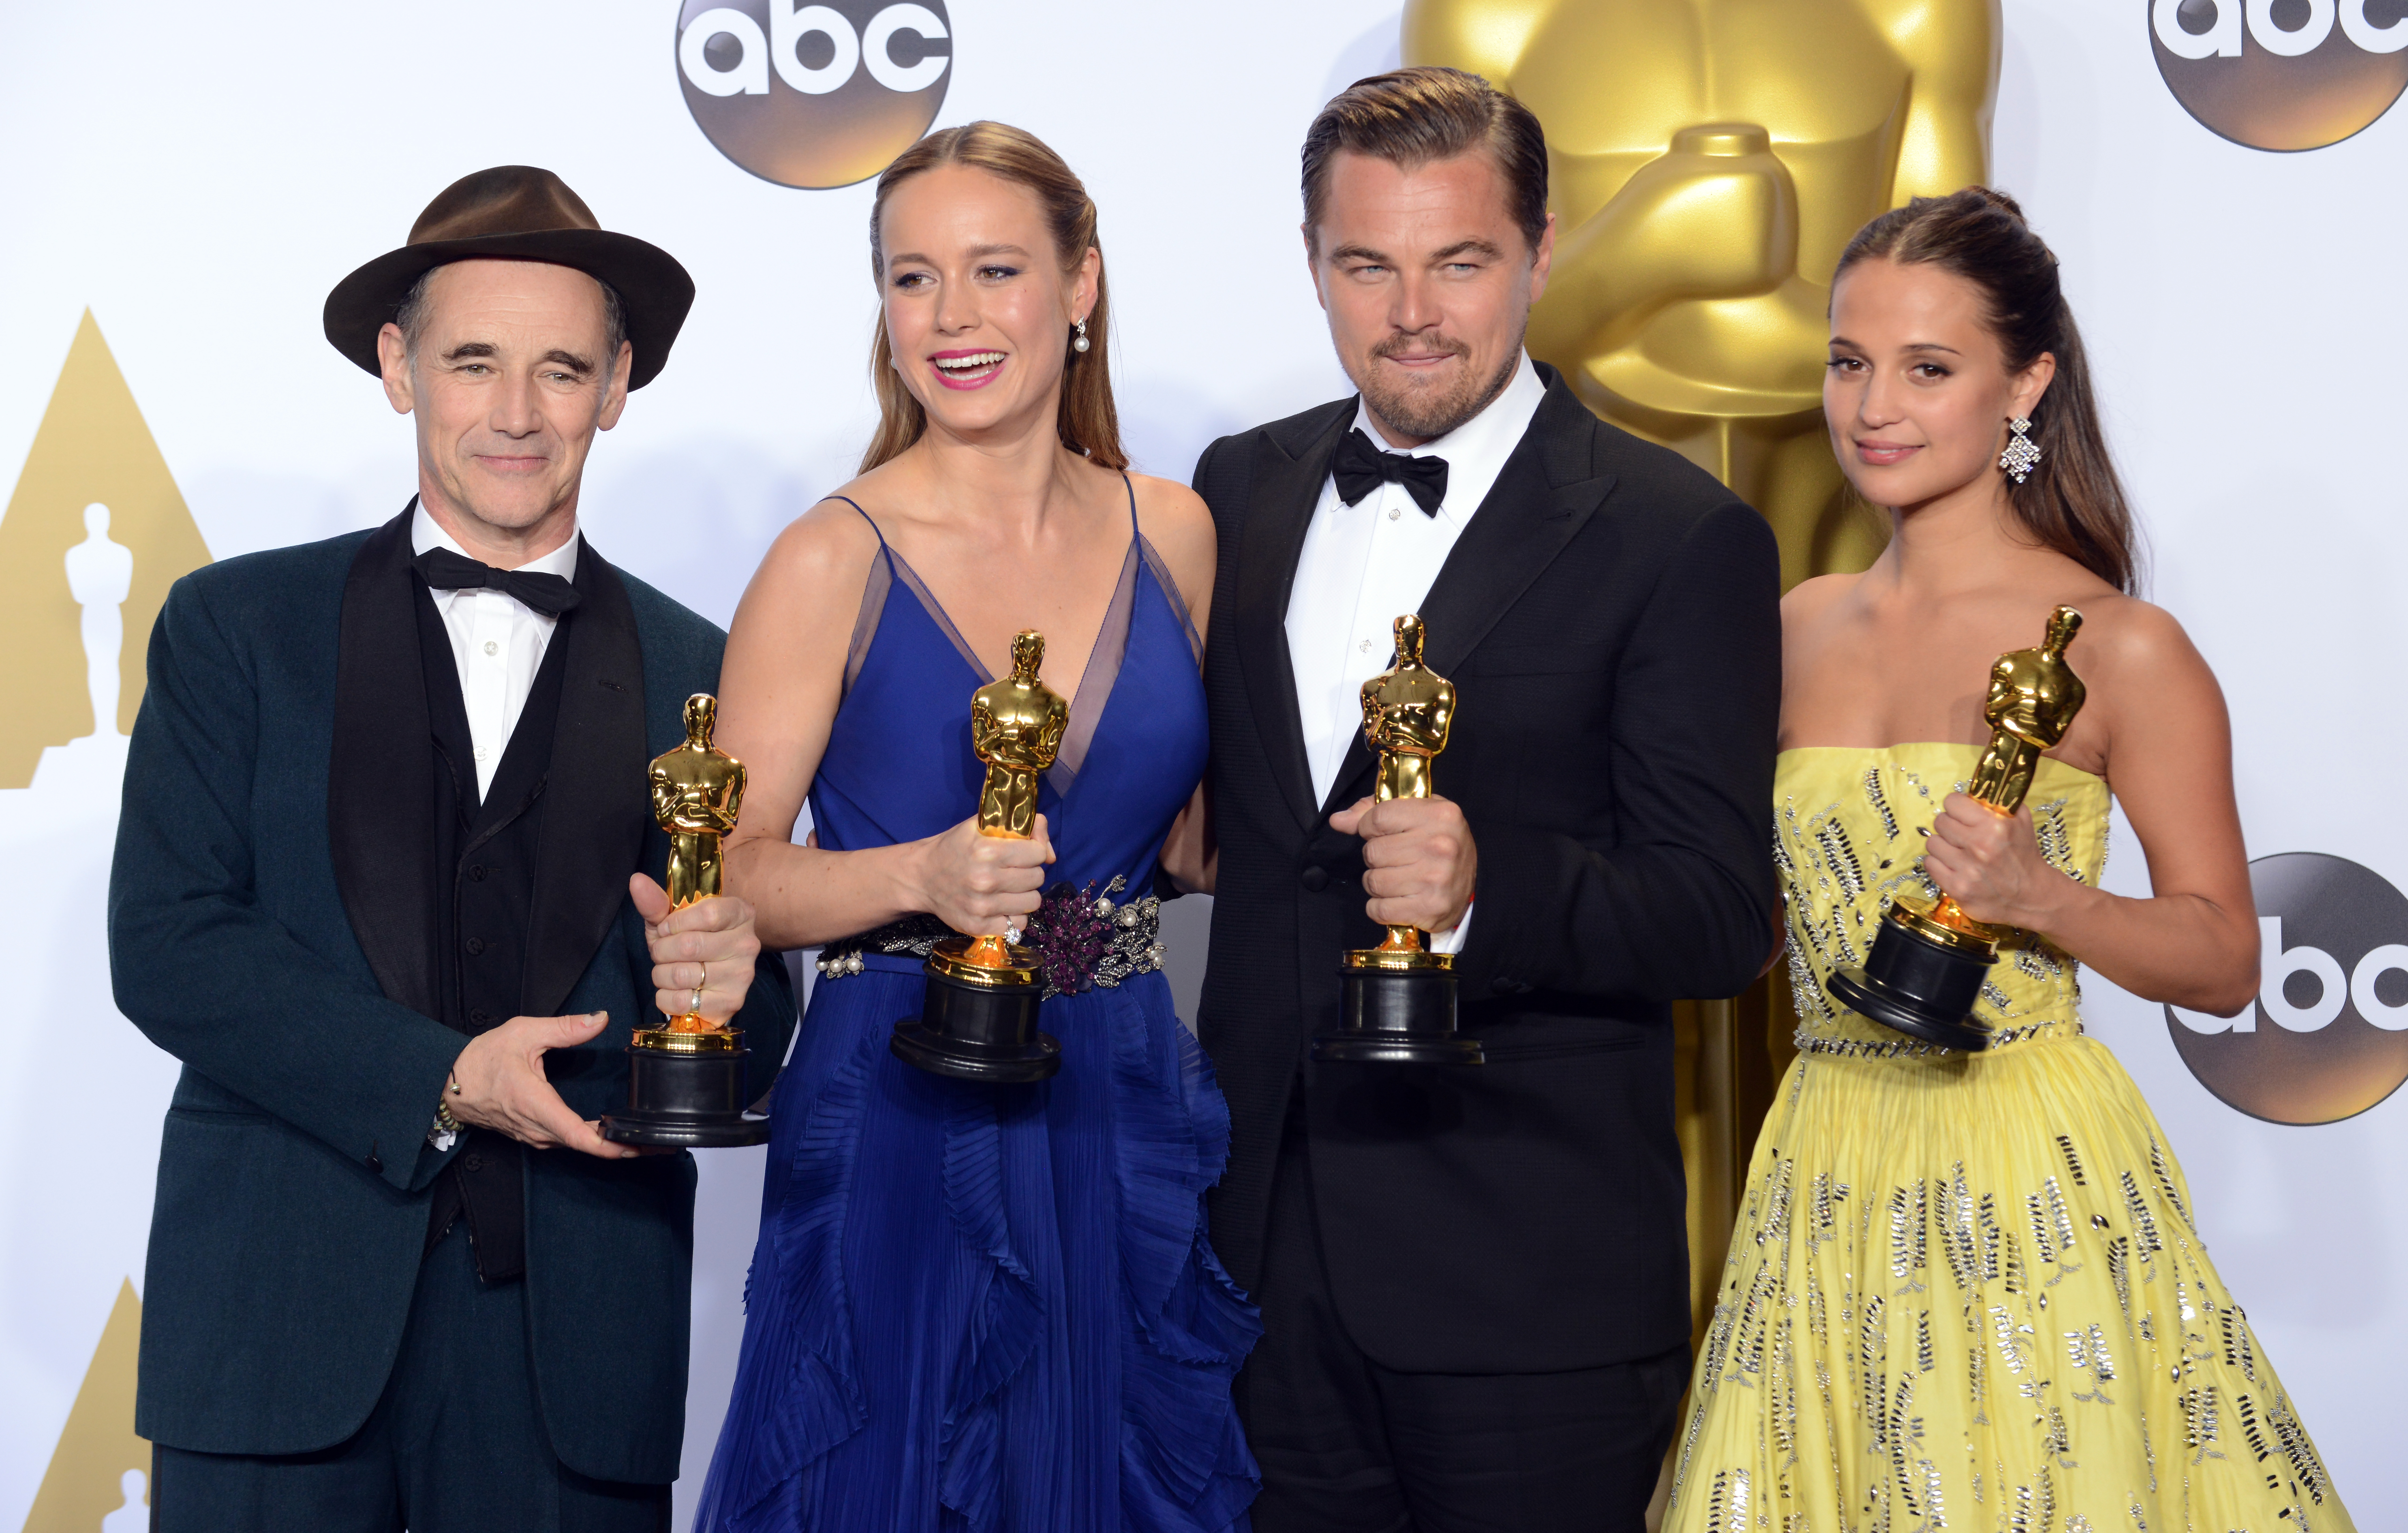 Actors Mark Rylance, Brie Larson, Leonardo DiCaprio and Alicia Vikander inside the press room for the 88th Annual Academy Awards held at Loews Hollywood Hotel on February 28, 2016 in Hollywood, California.